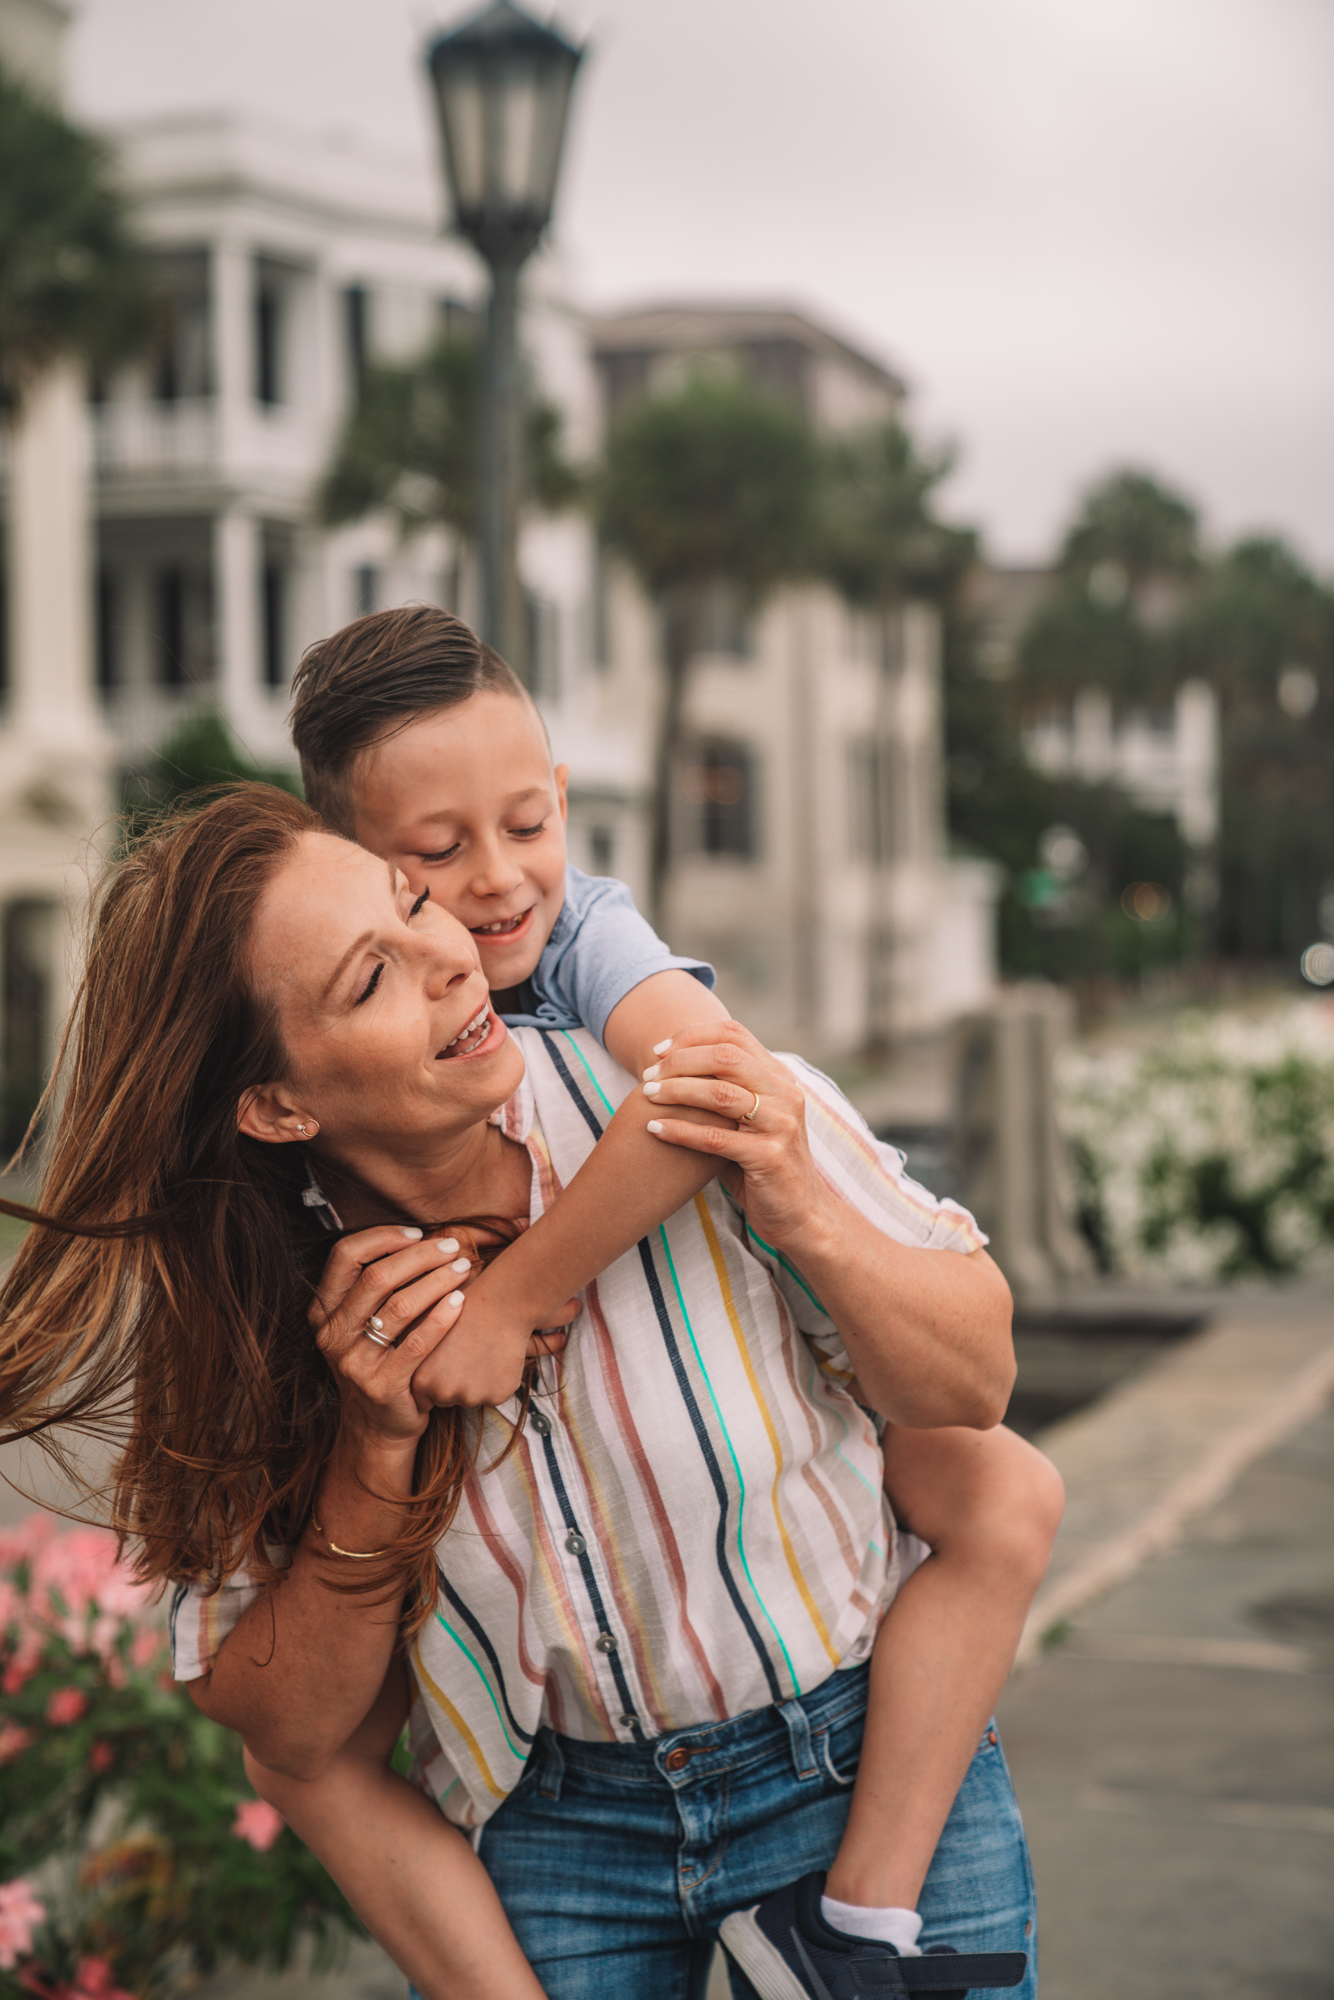 charleston sc visitors guide - a little boy and his grandma smile